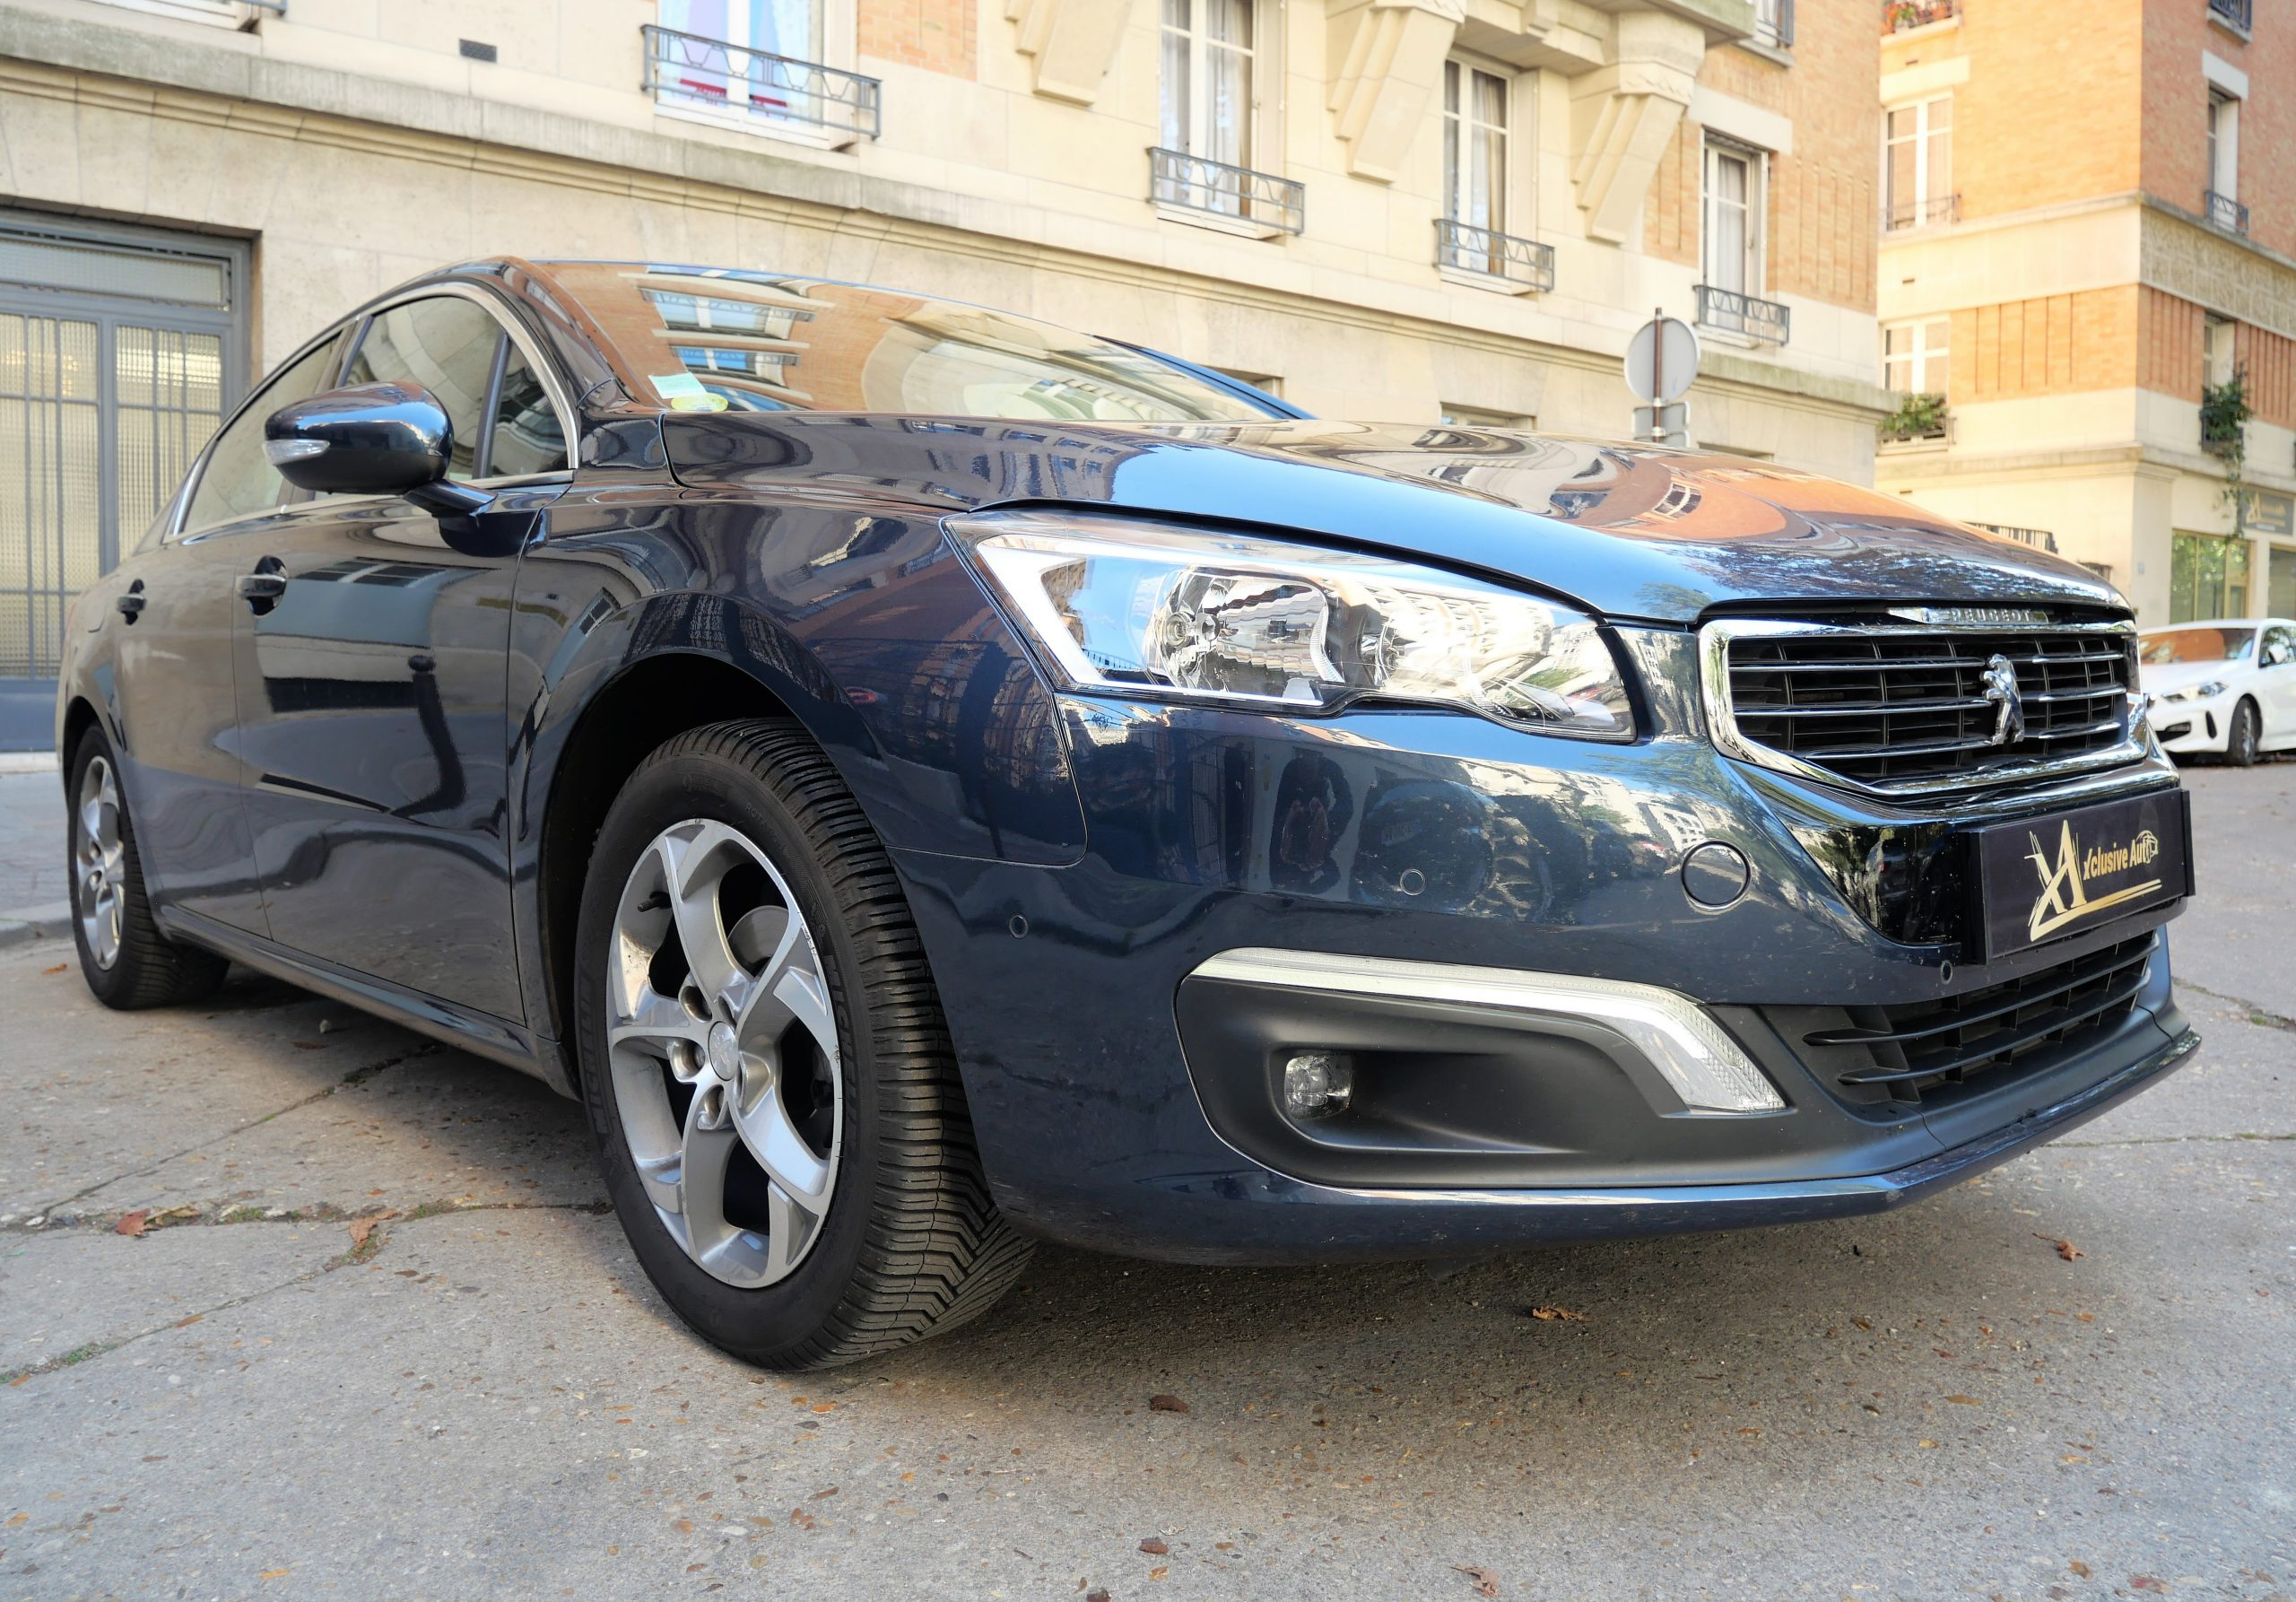 PEUGEOT 508 Allure Phase 2 1.6 BlueHDI S&S 120 ch 6